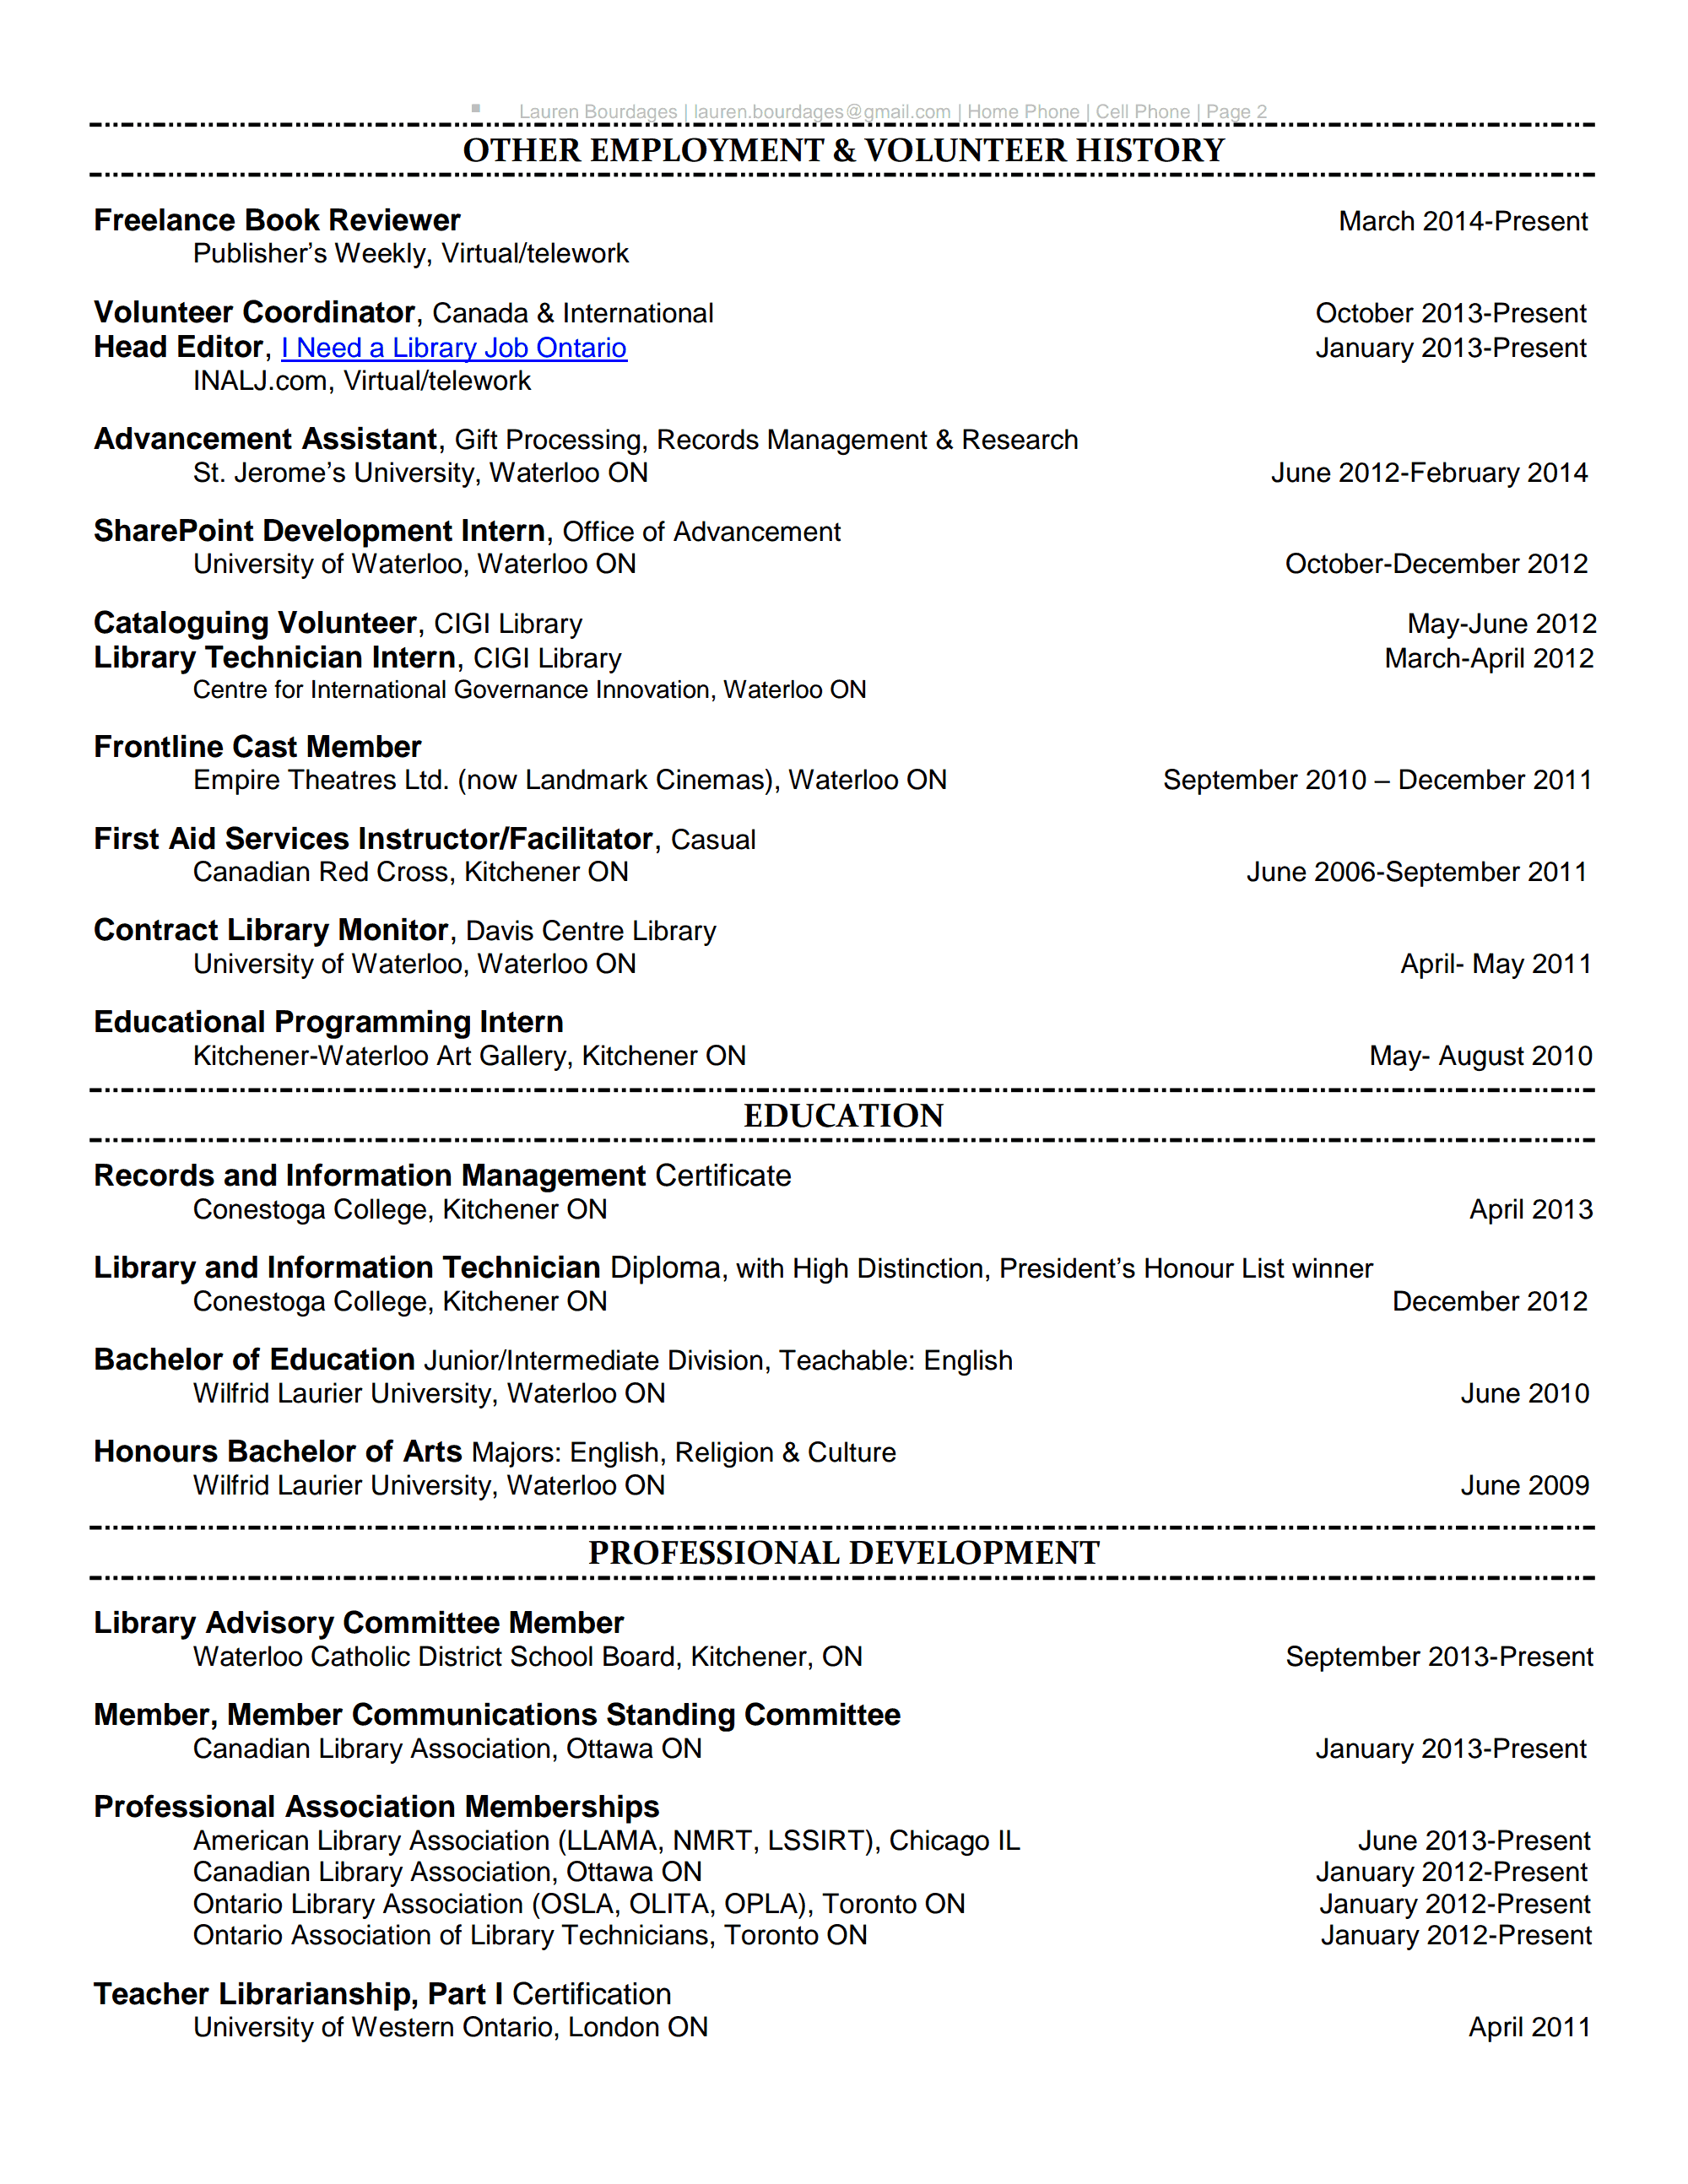 laurenbourdages resume page 2